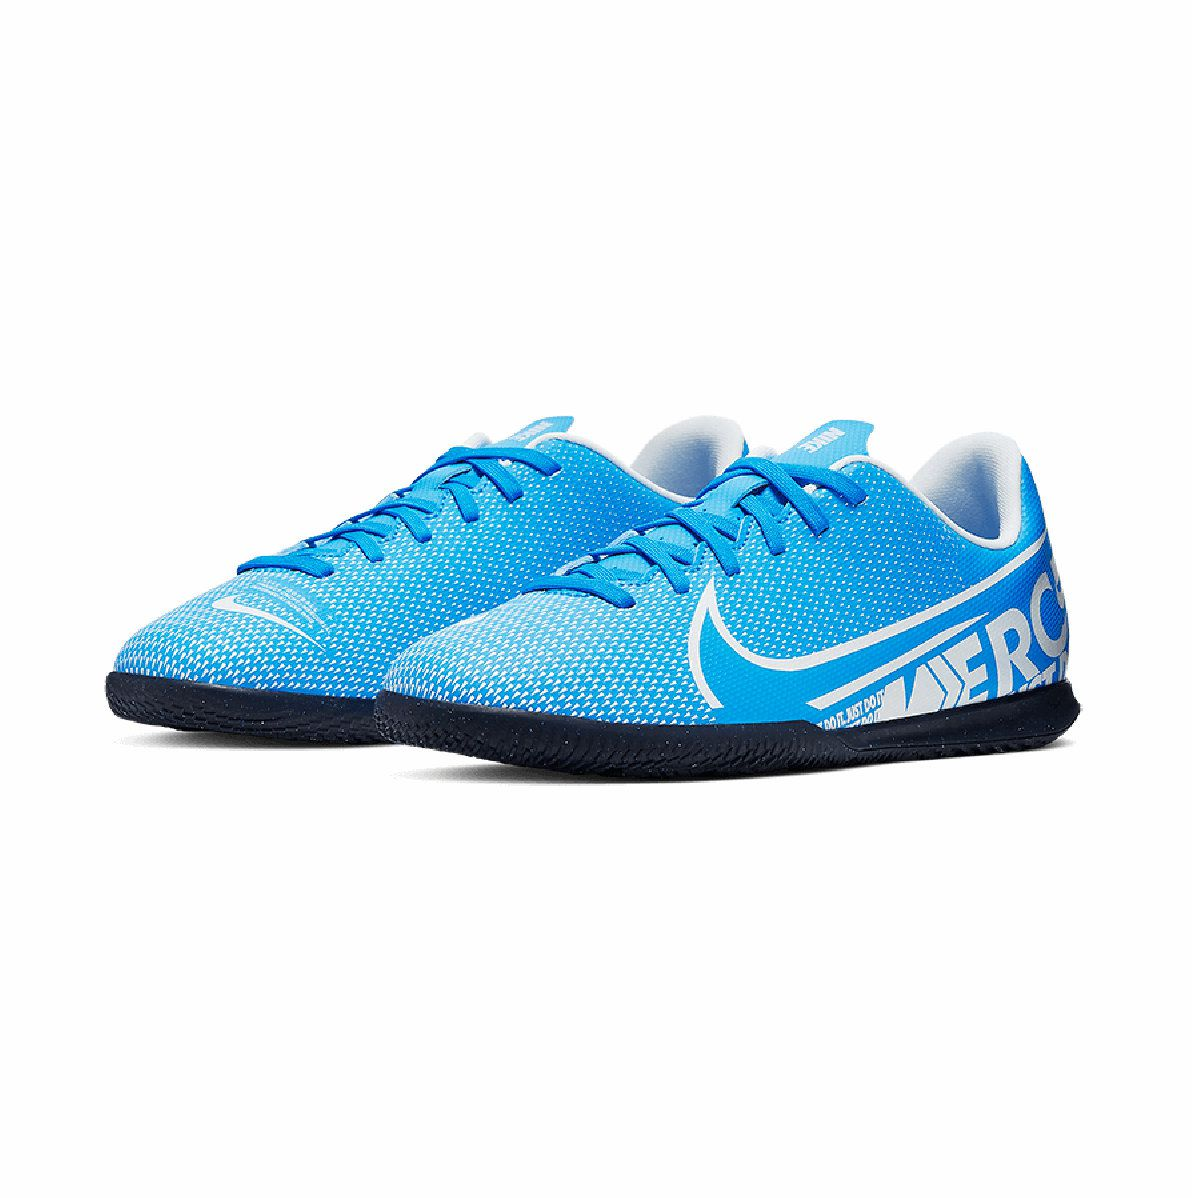 Tenis Nike Mercurial Vapor 13 Club IC JR Chuteira Futsal Infantil AT8169-414